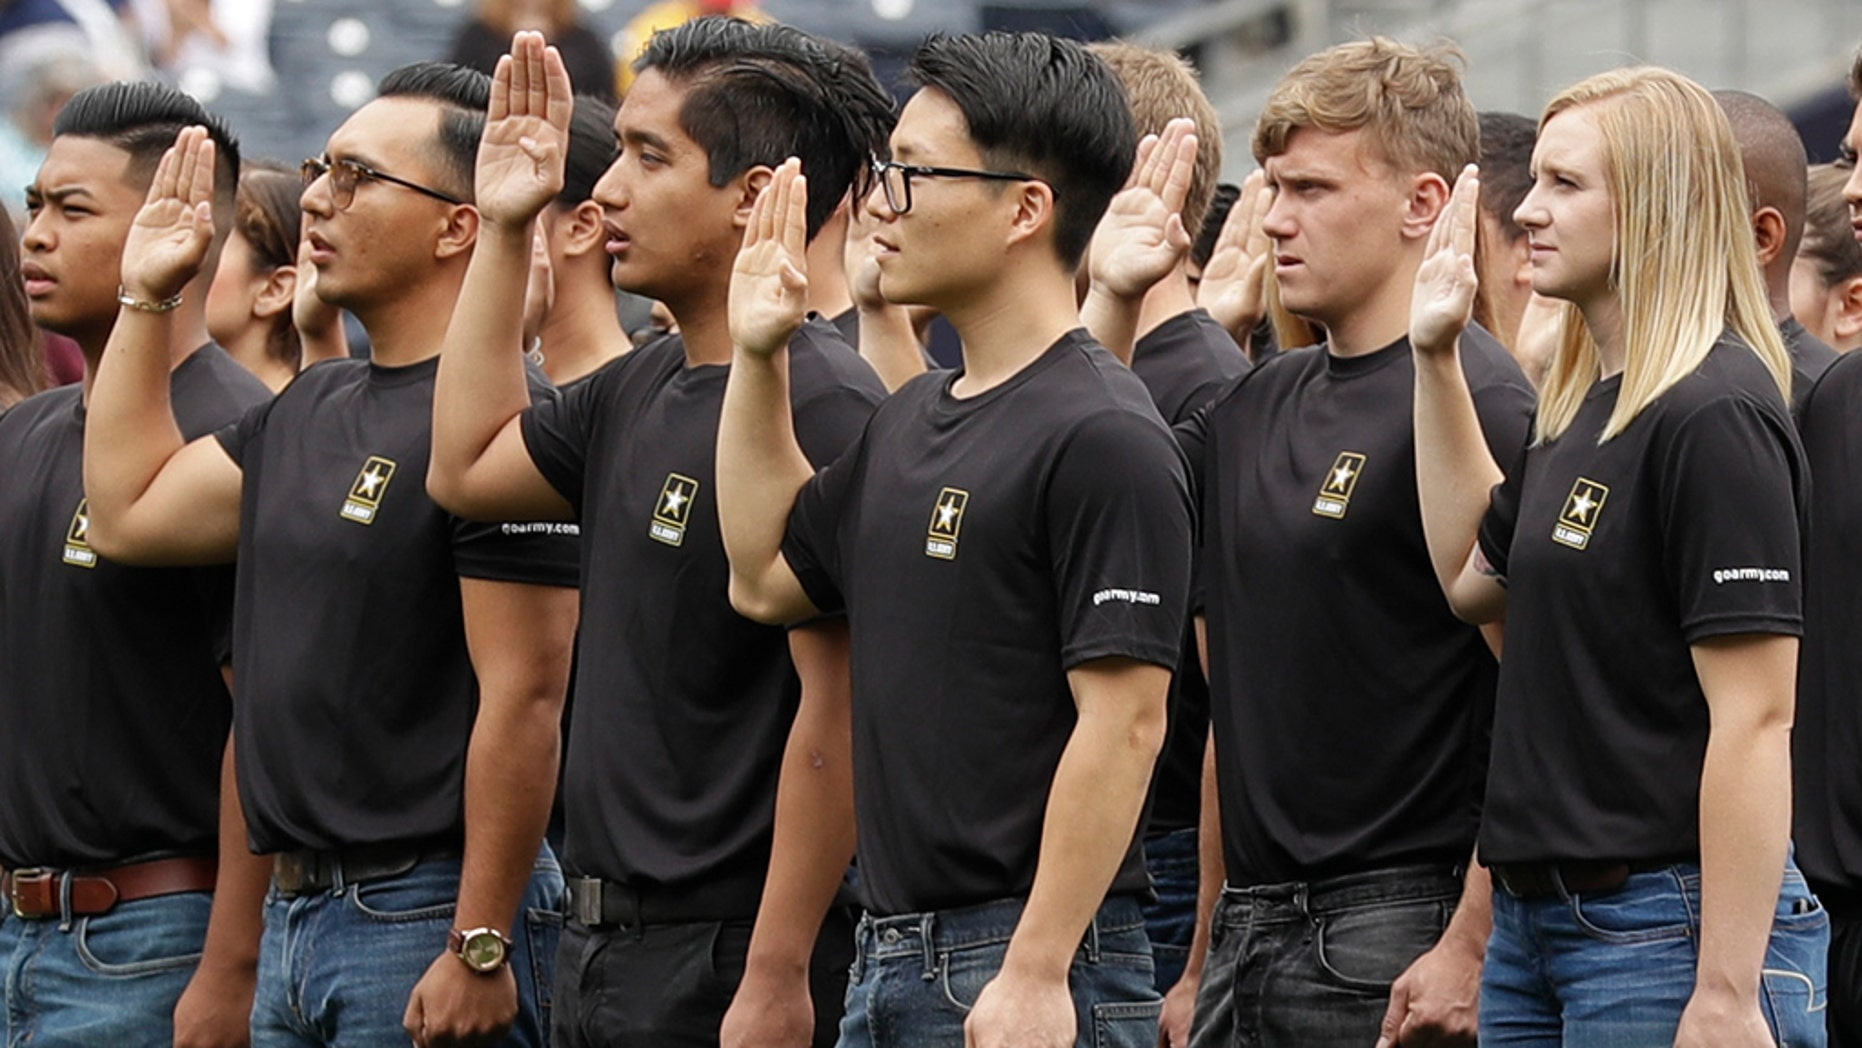 The Army has missed its recruiting goal for the first time in more than a decade. Army leaders say they signed up about 70,000 new troops for the fiscal year that ends Sept. 30, 2018.